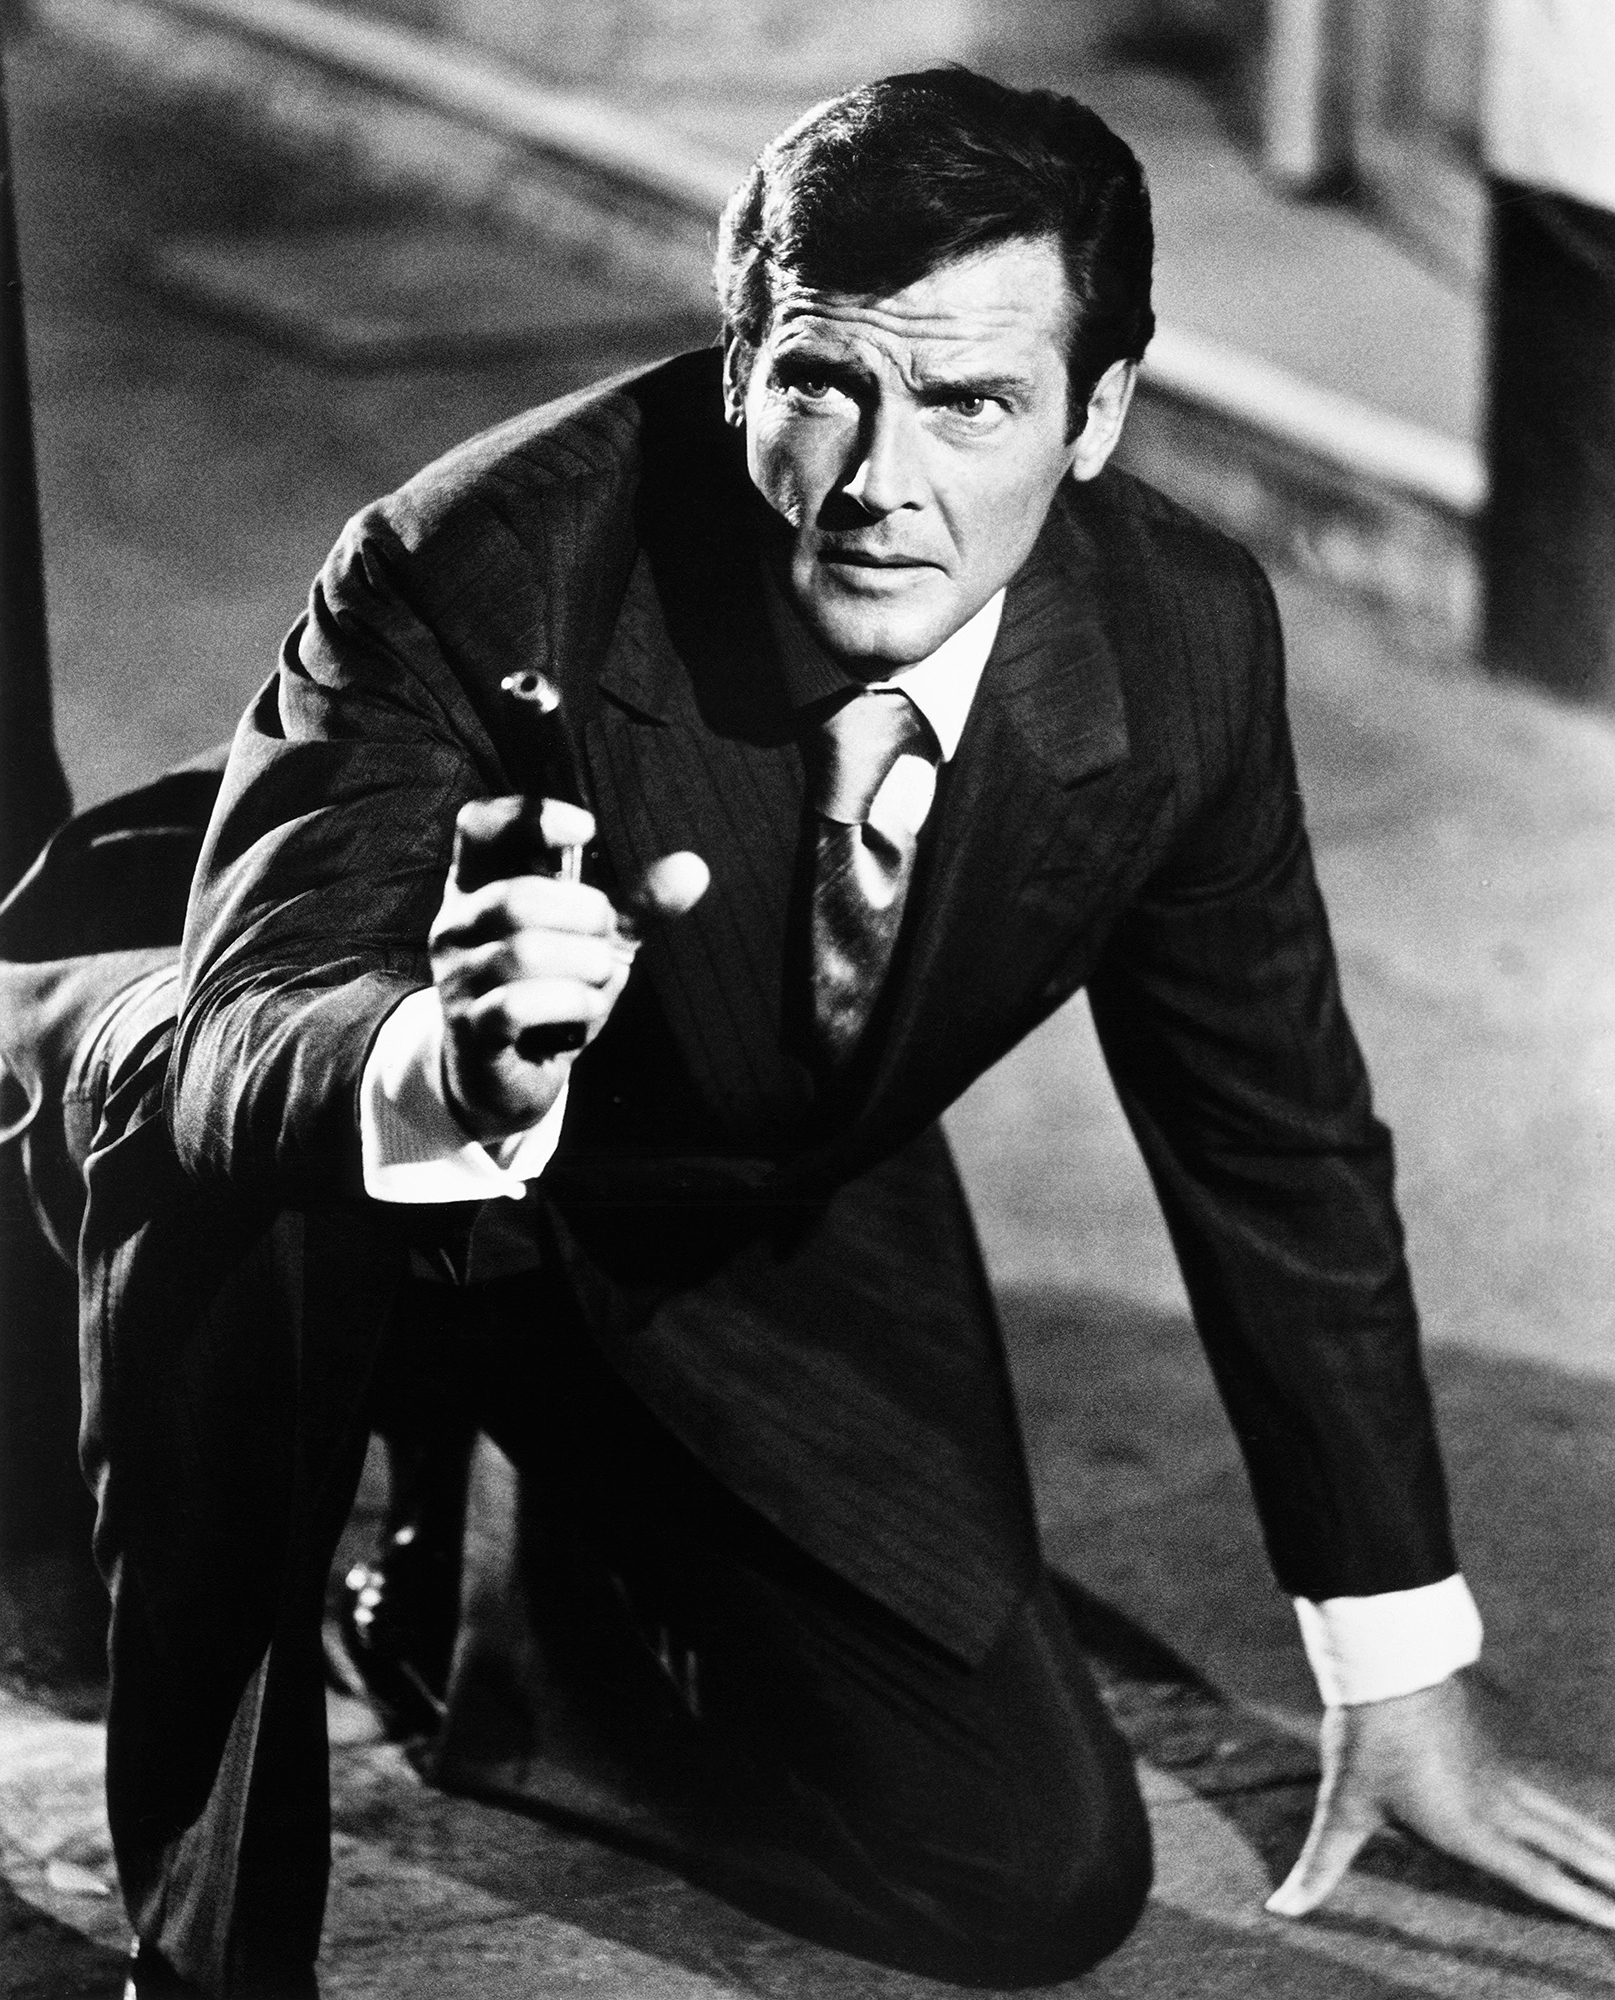 THE MAN WITH THE GOLDEN GUN, Roger Moore, 1974